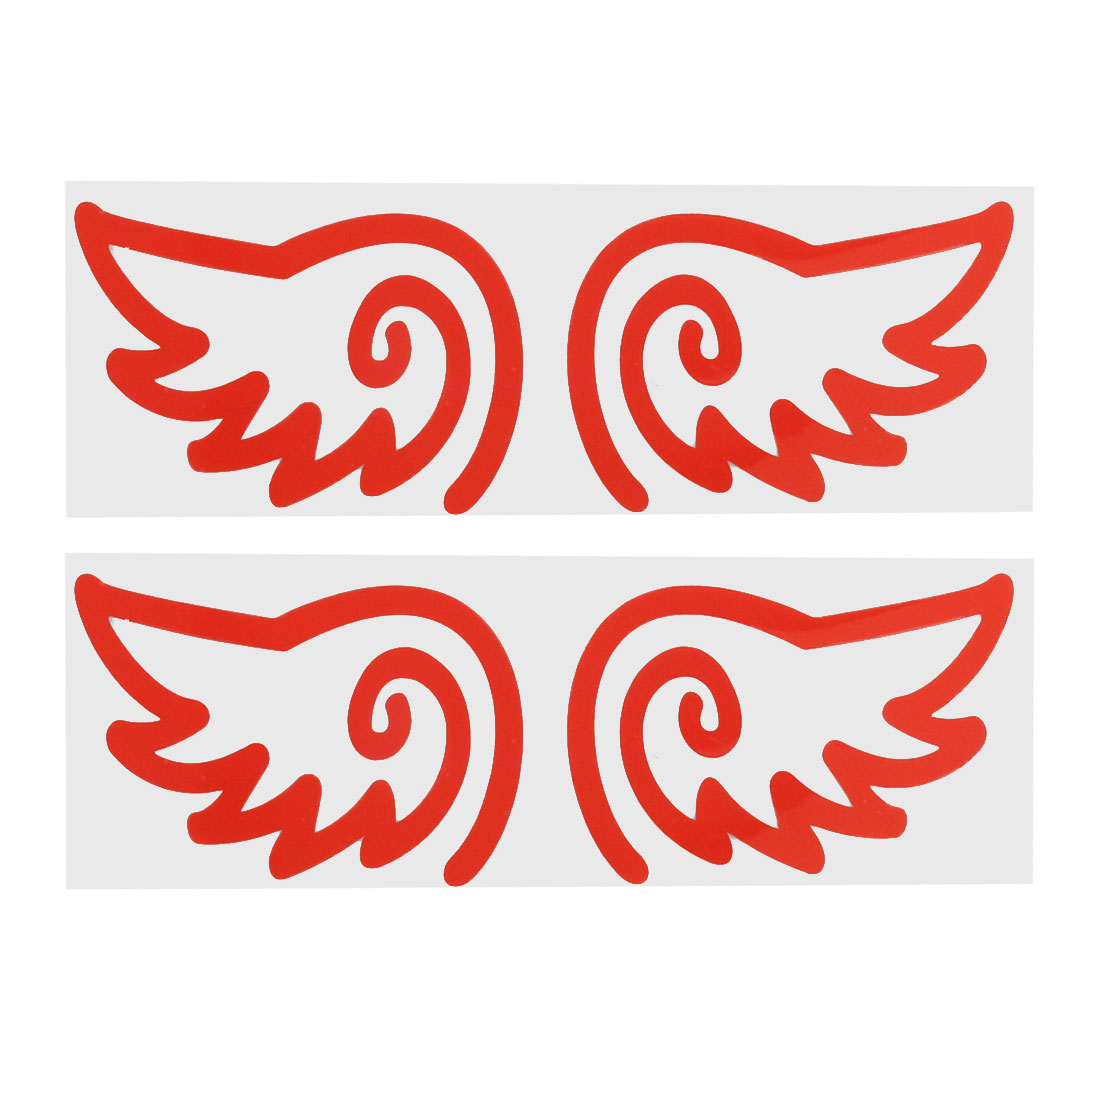 Auto Car Red Wing Shaped Reflective Sticker Decal Decorative 2 Pairs